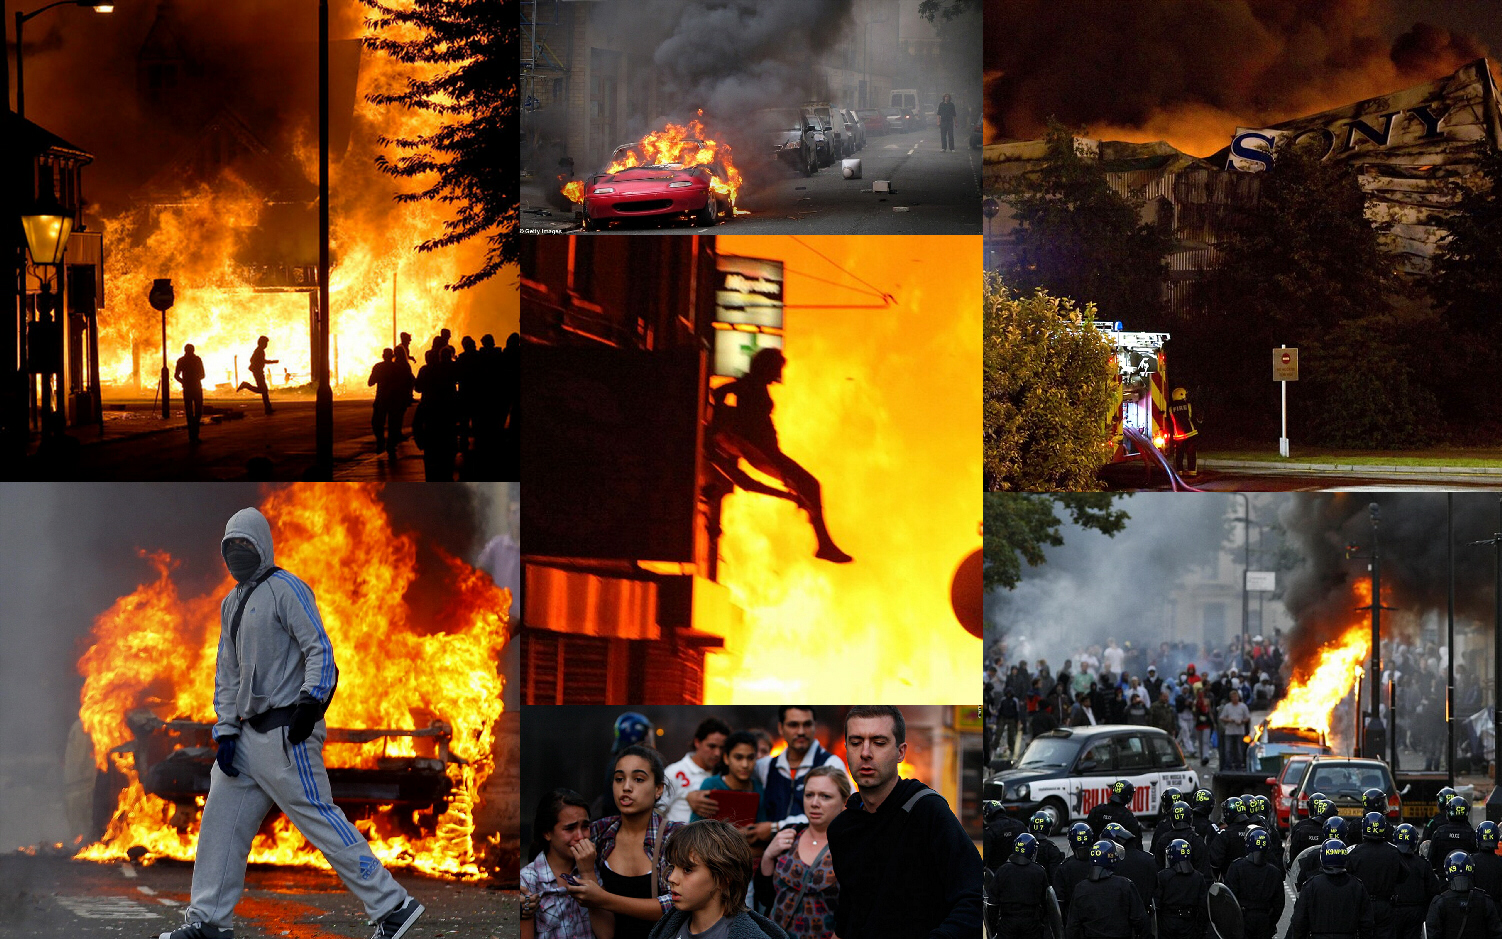 London riots, August 8 and 9